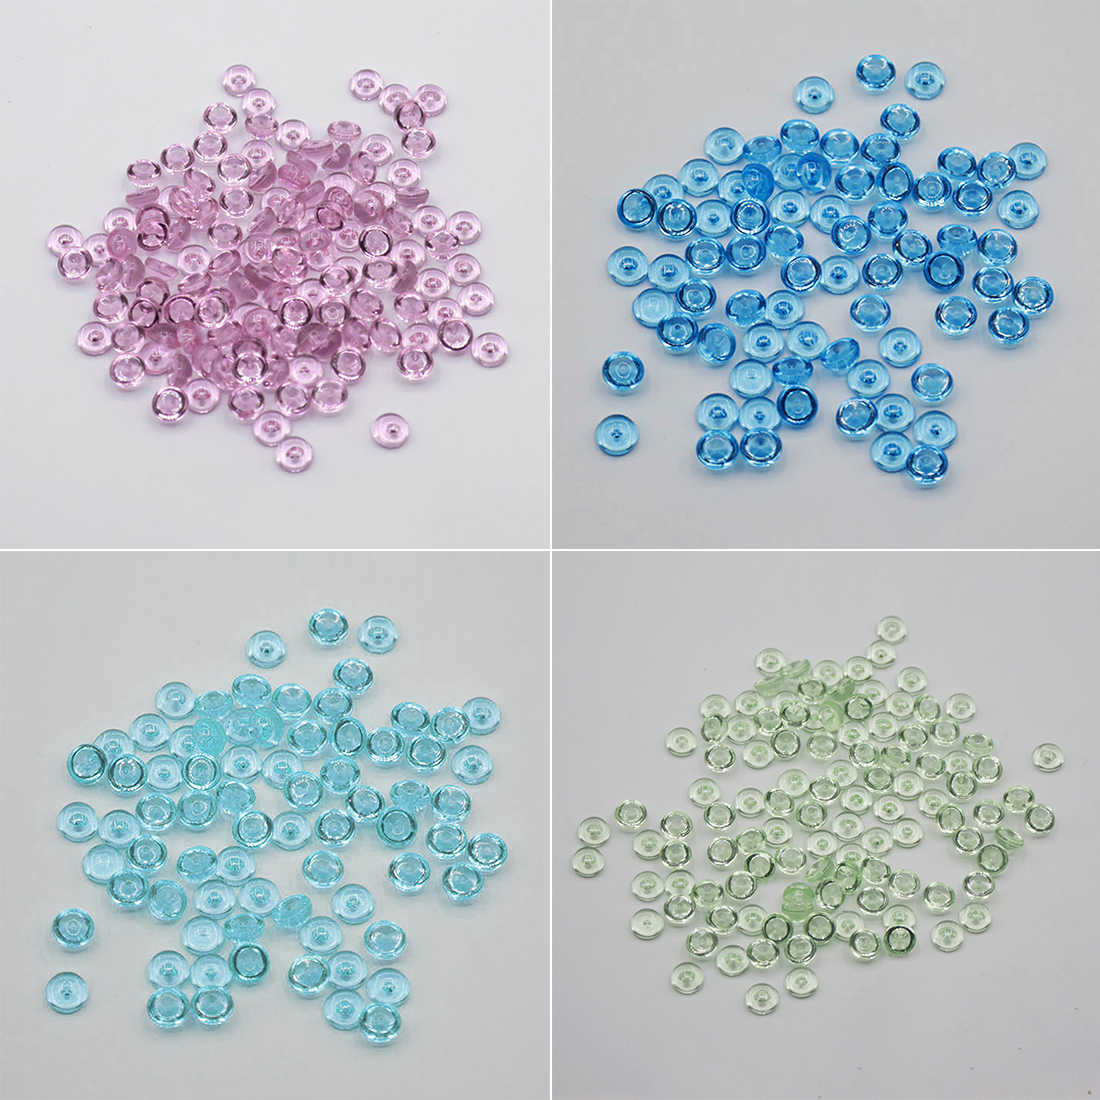 500pcs/pack Fishbowl Beads DIY Slime Decoration 7mm Diameter For Craft Tools Home Decoration Beads for Slime